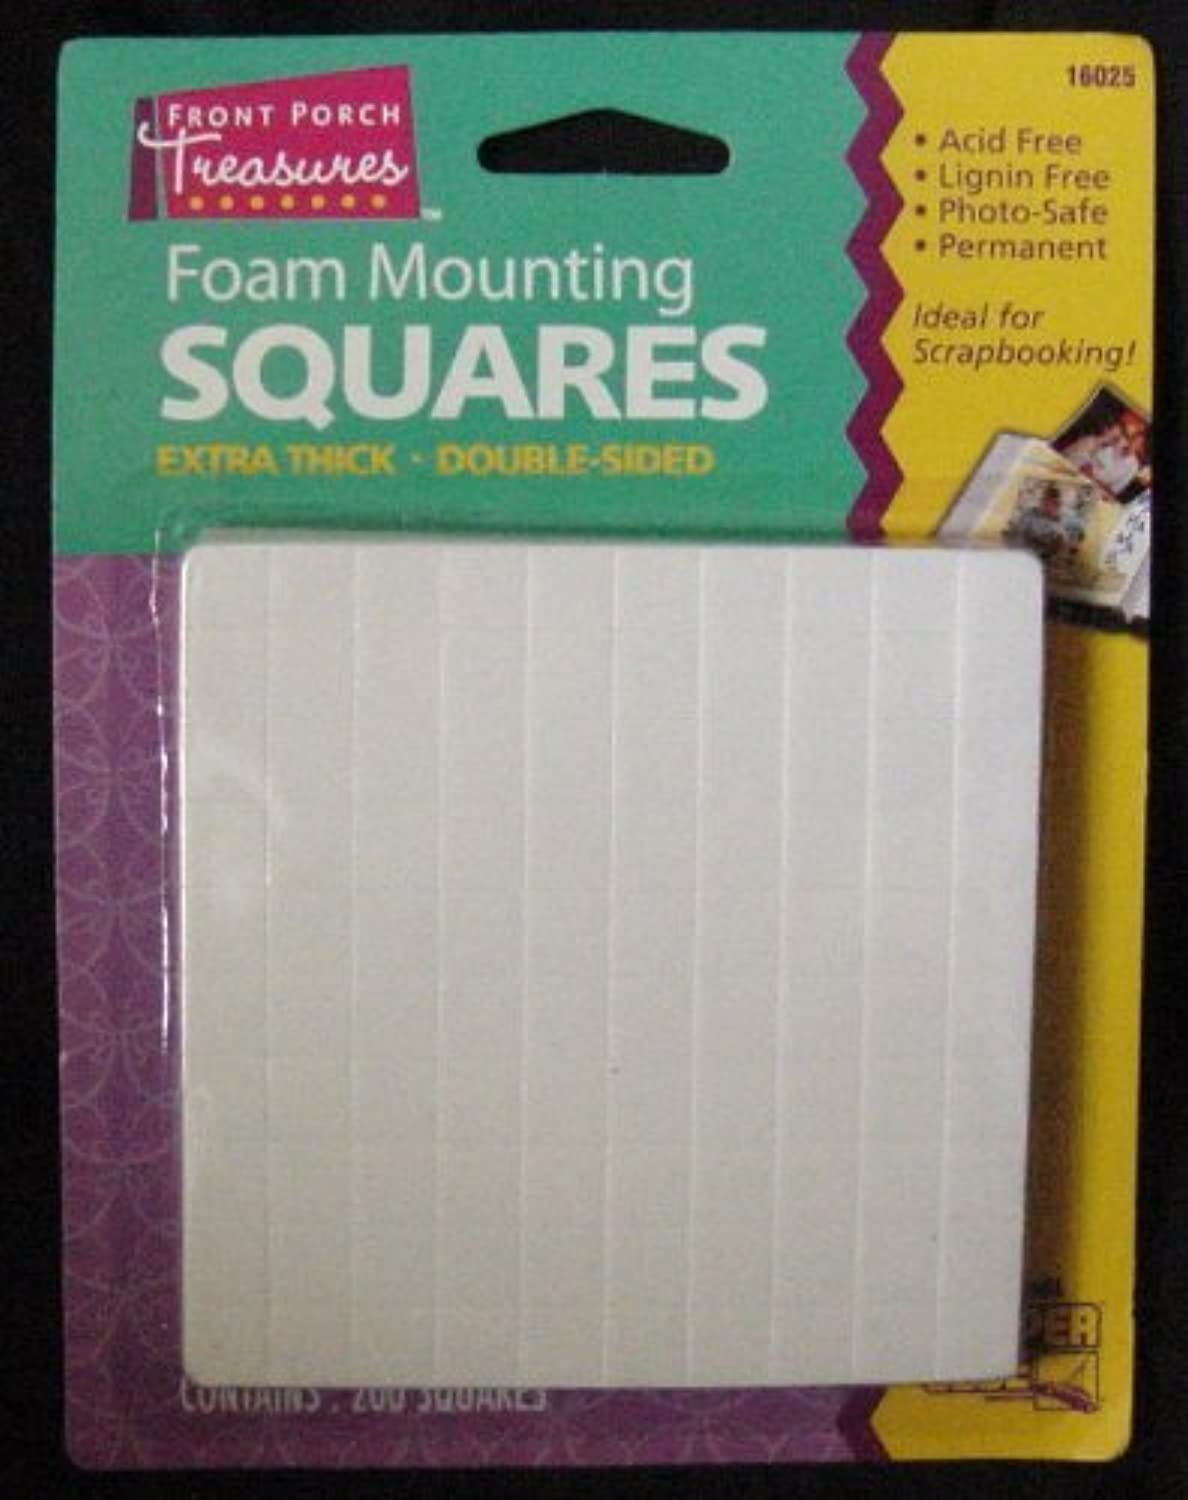 Foam Mounting Squares Double Double Double Sided Extra Thick Small 200 Squares Per Package by front portch treasures B0046NQKJW | Neueste Technologie  34694c